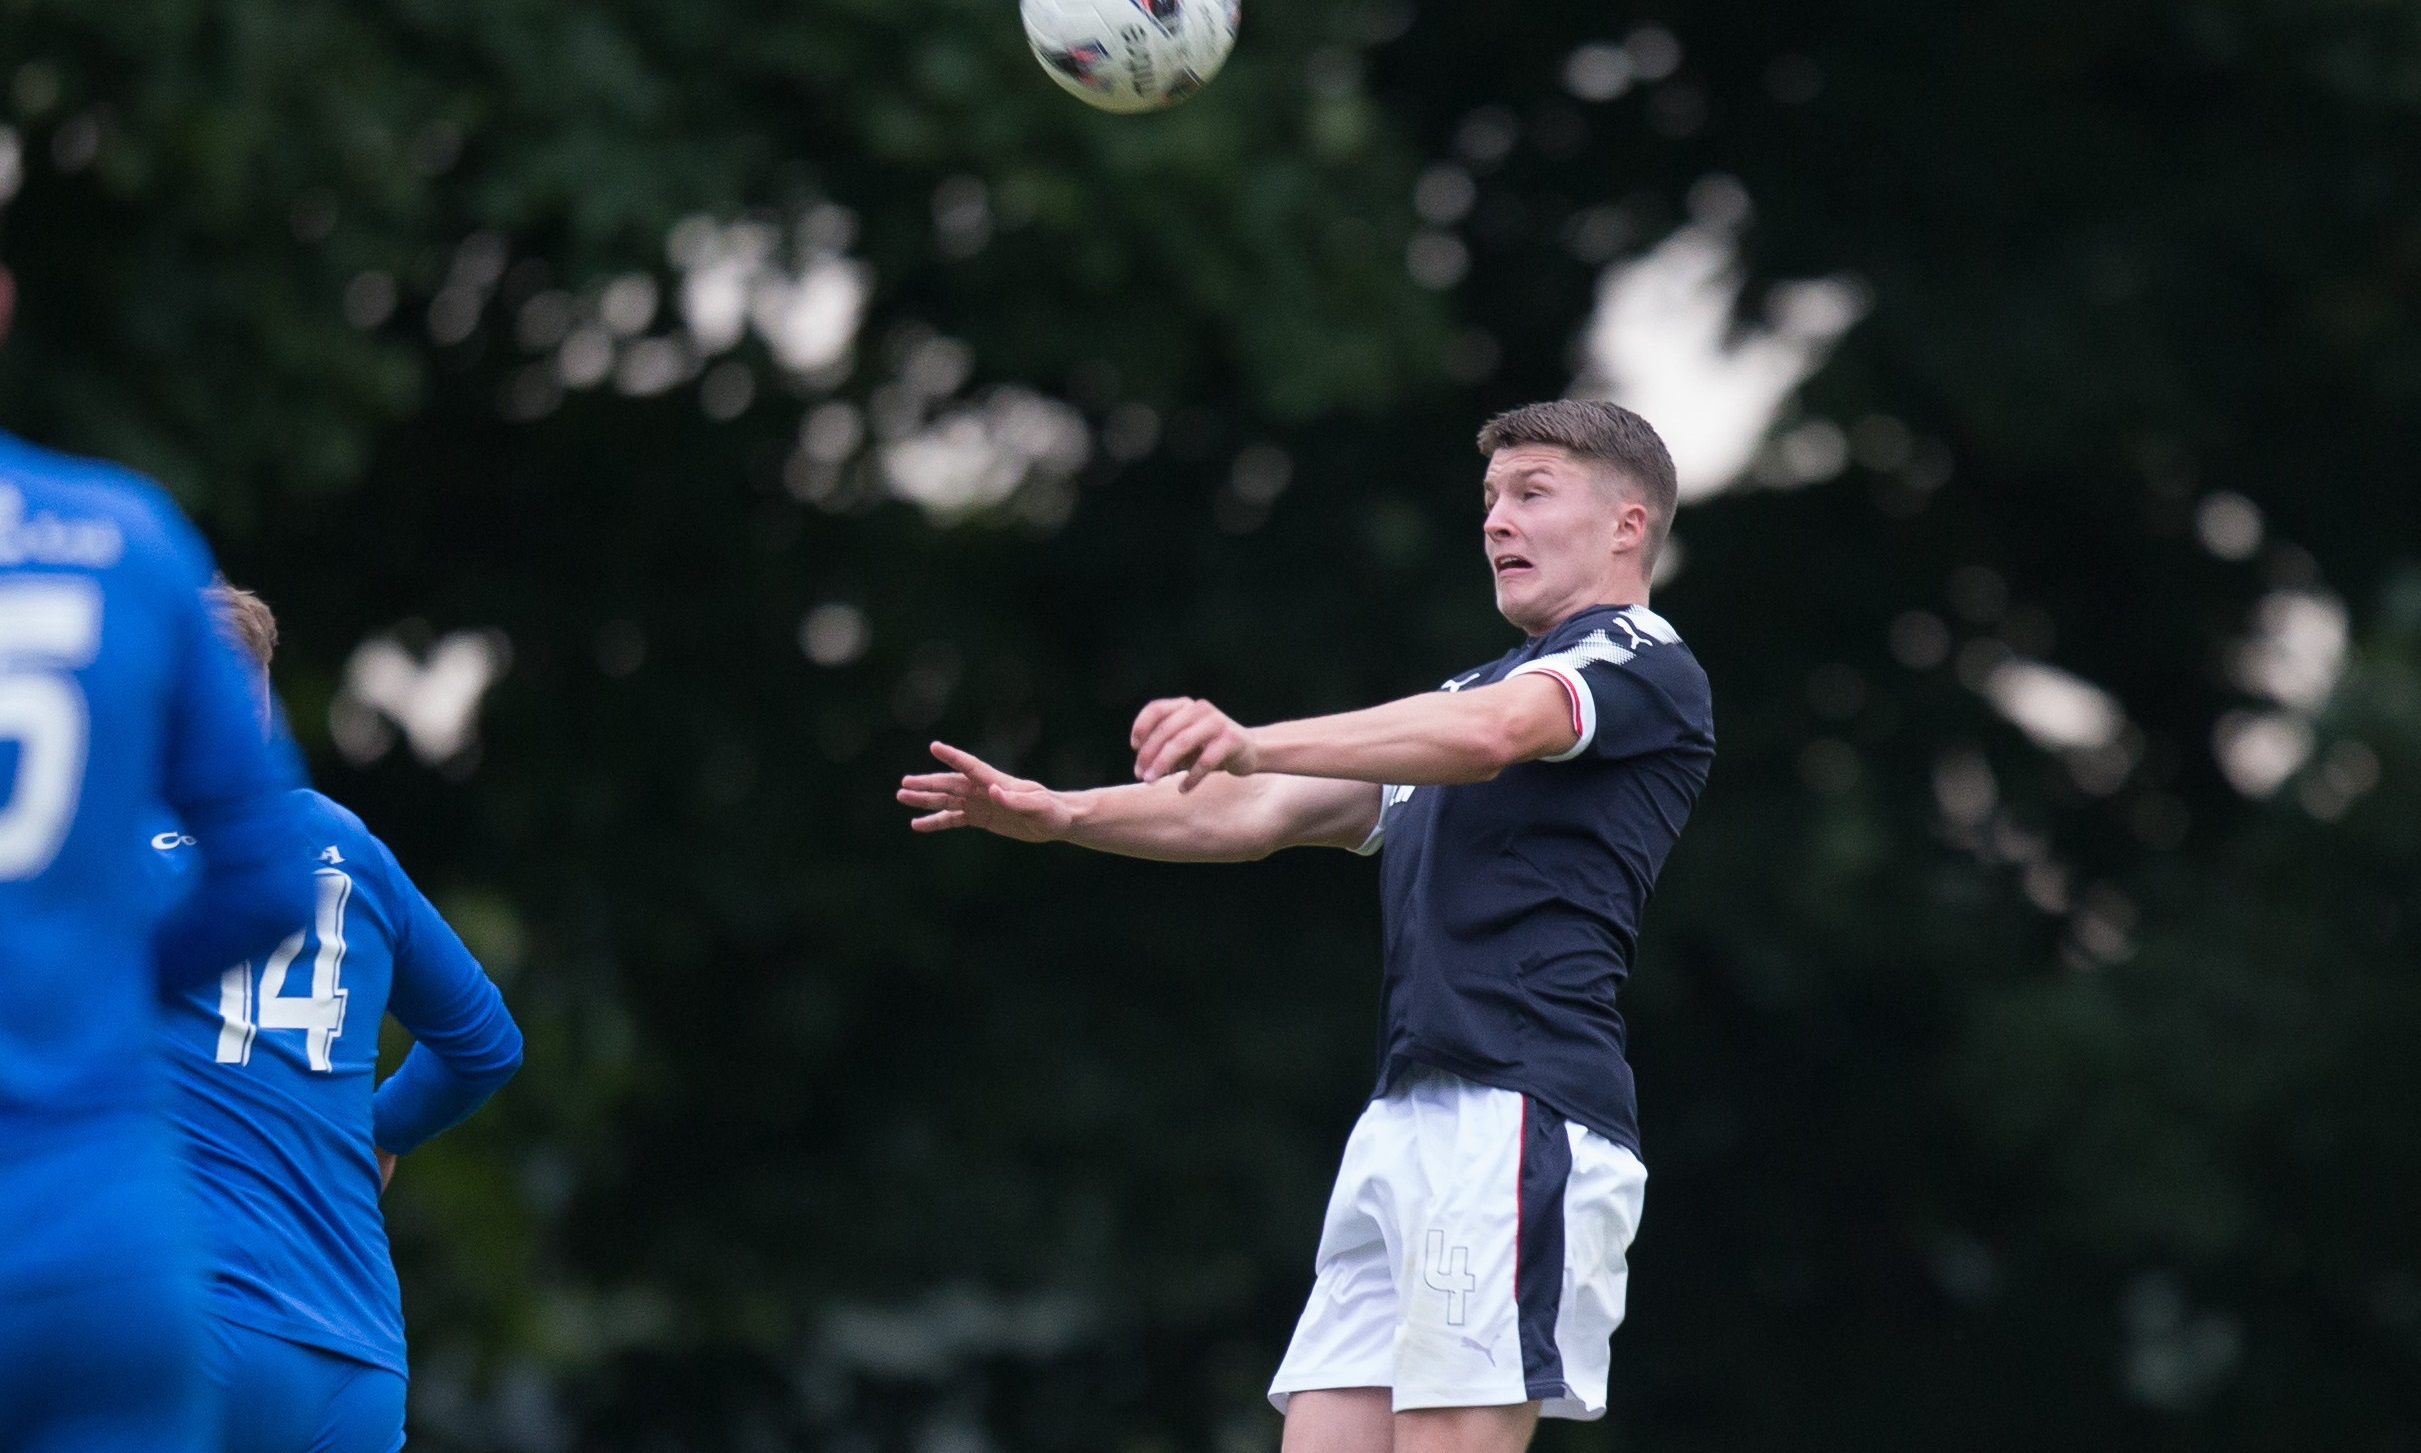 Former West Brom youth player Jordan Piggott in action for Dundee U/20s at Thomson Park. Picture by David Young